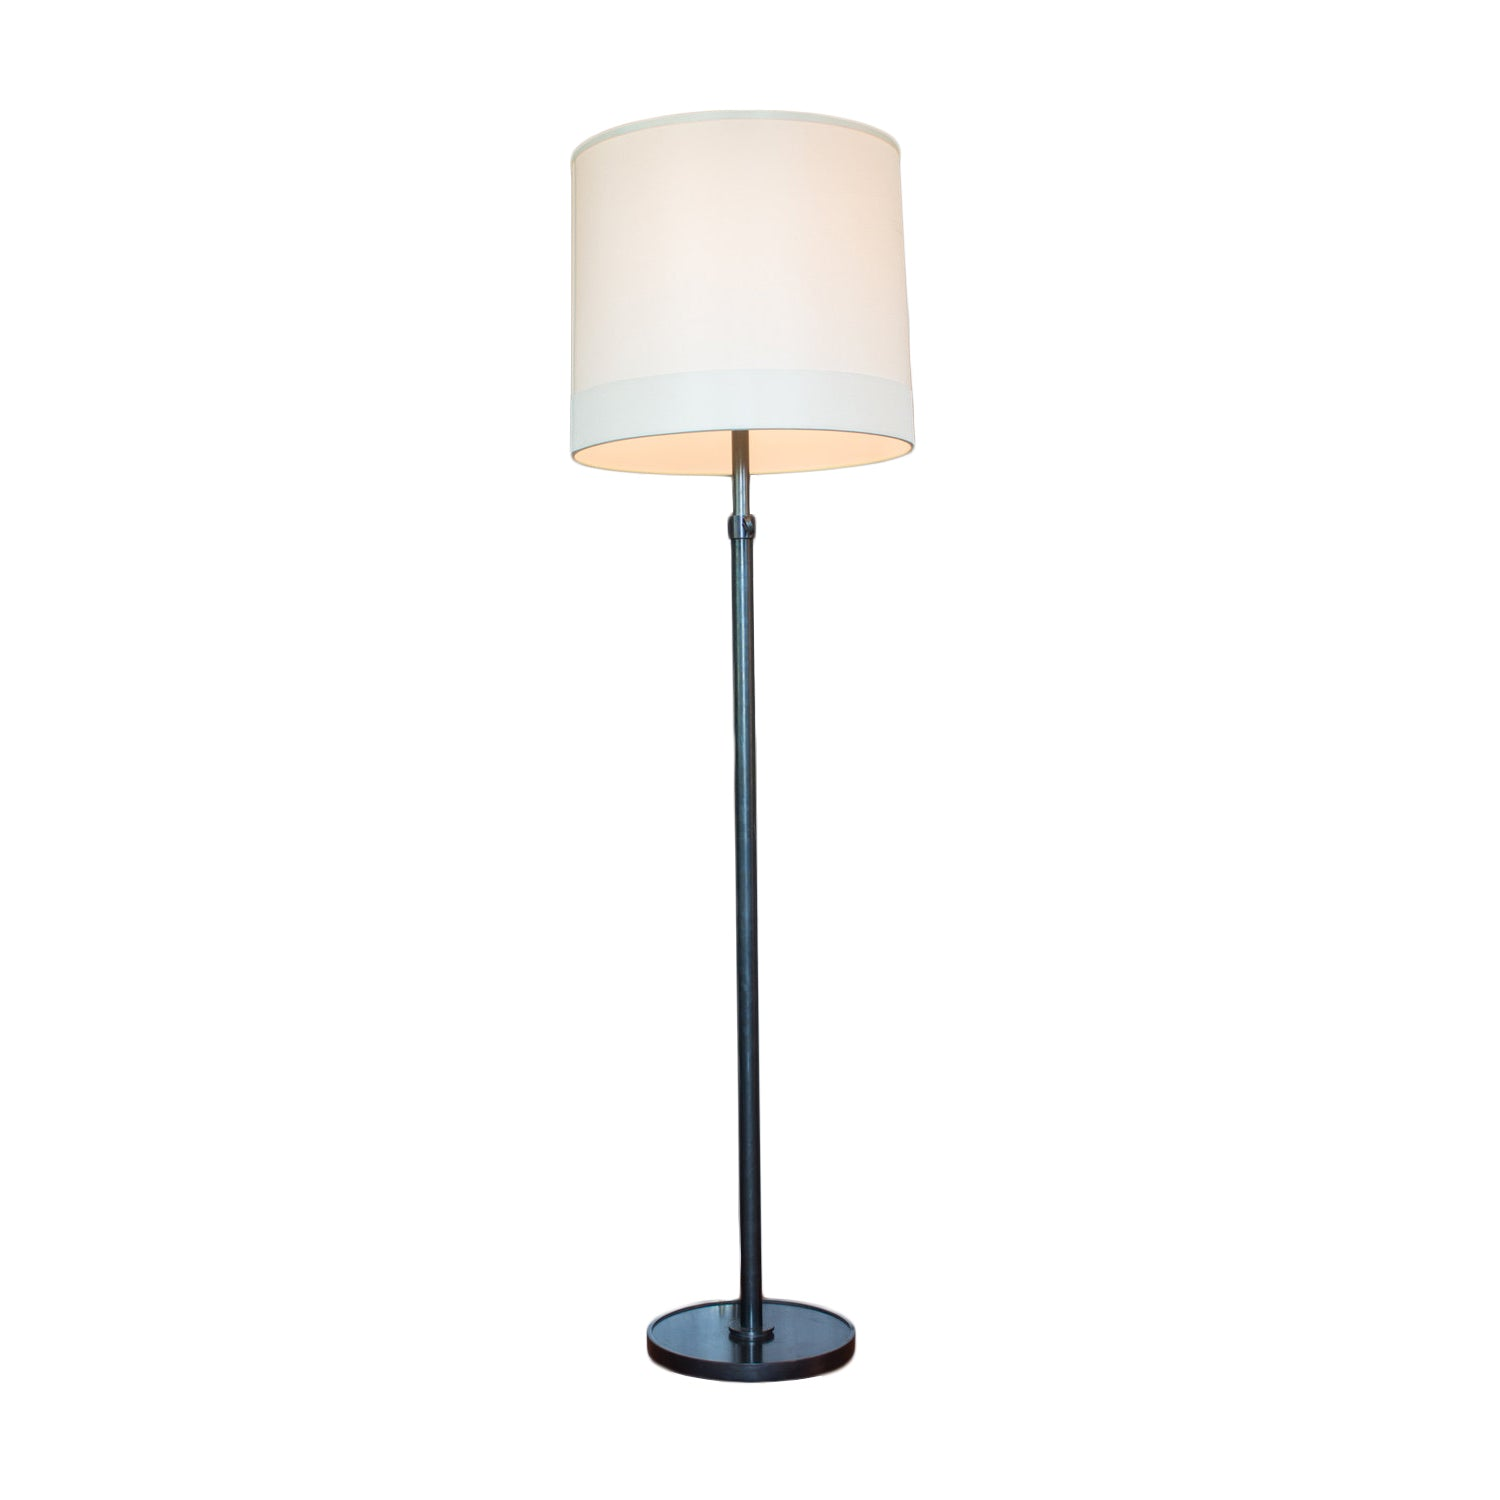 Simple Floor Lamp in Bronze with Silk Shade